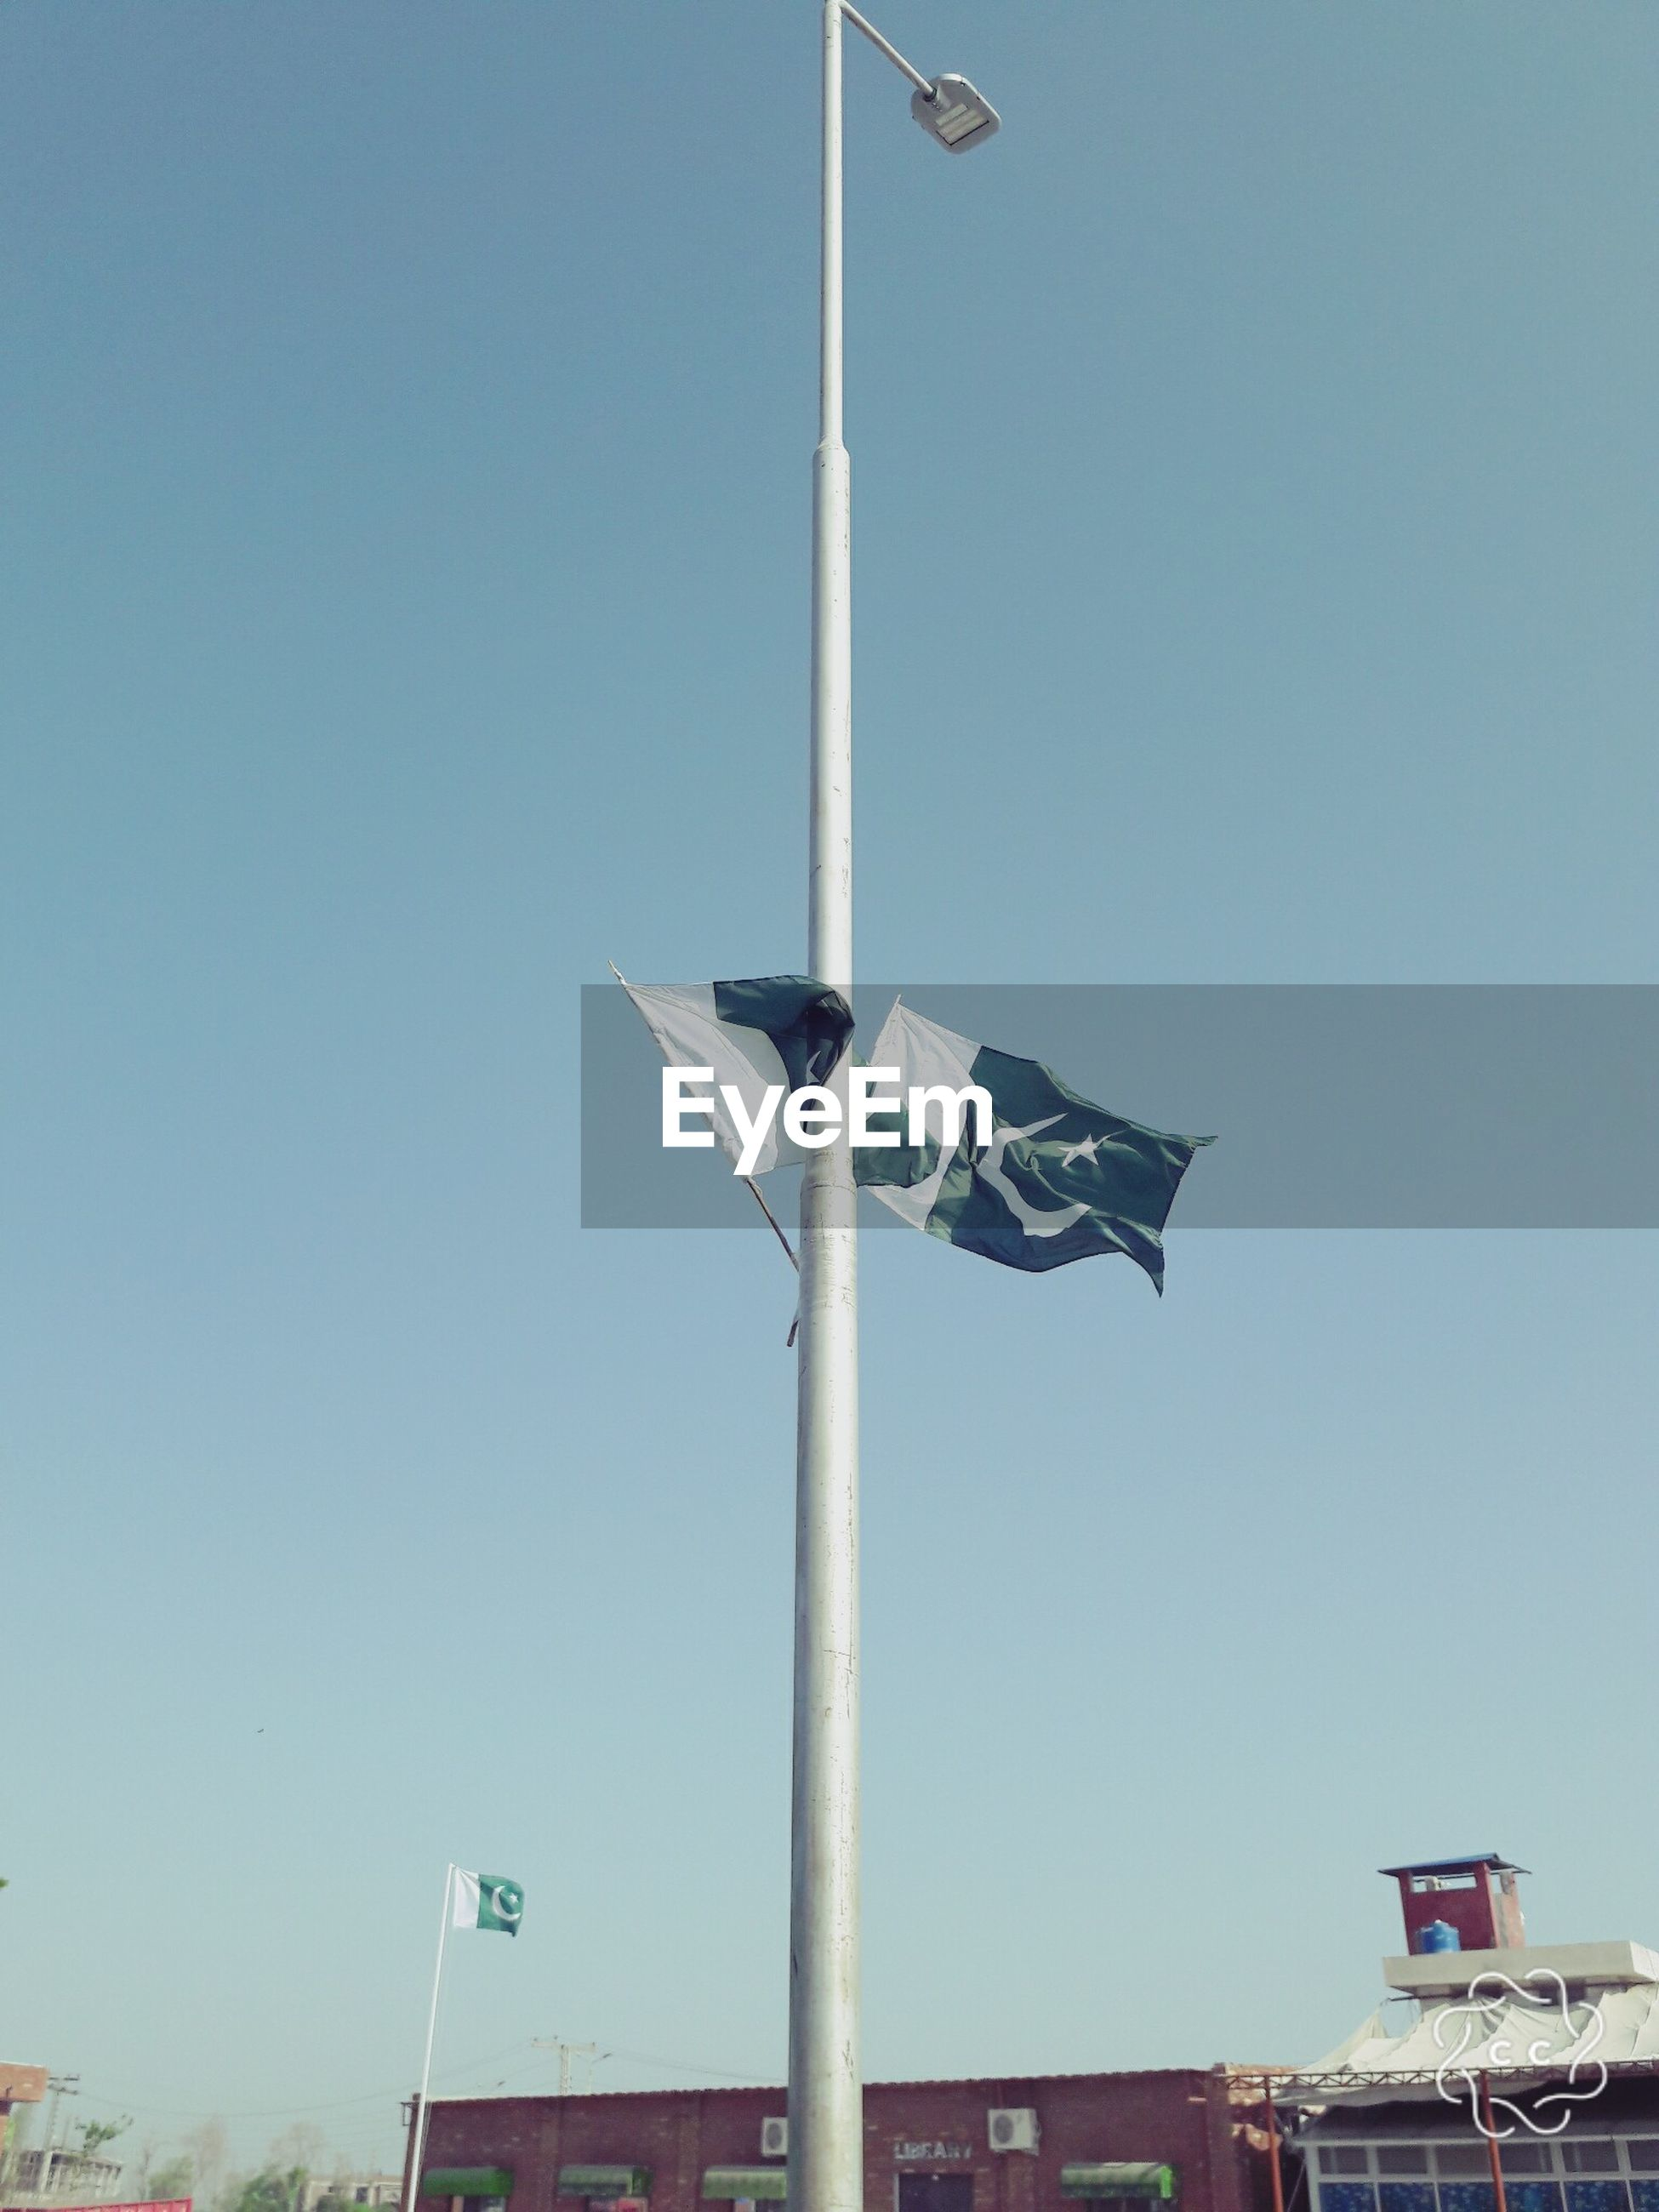 flag, clear sky, low angle view, day, outdoors, sky, blue, no people, road sign